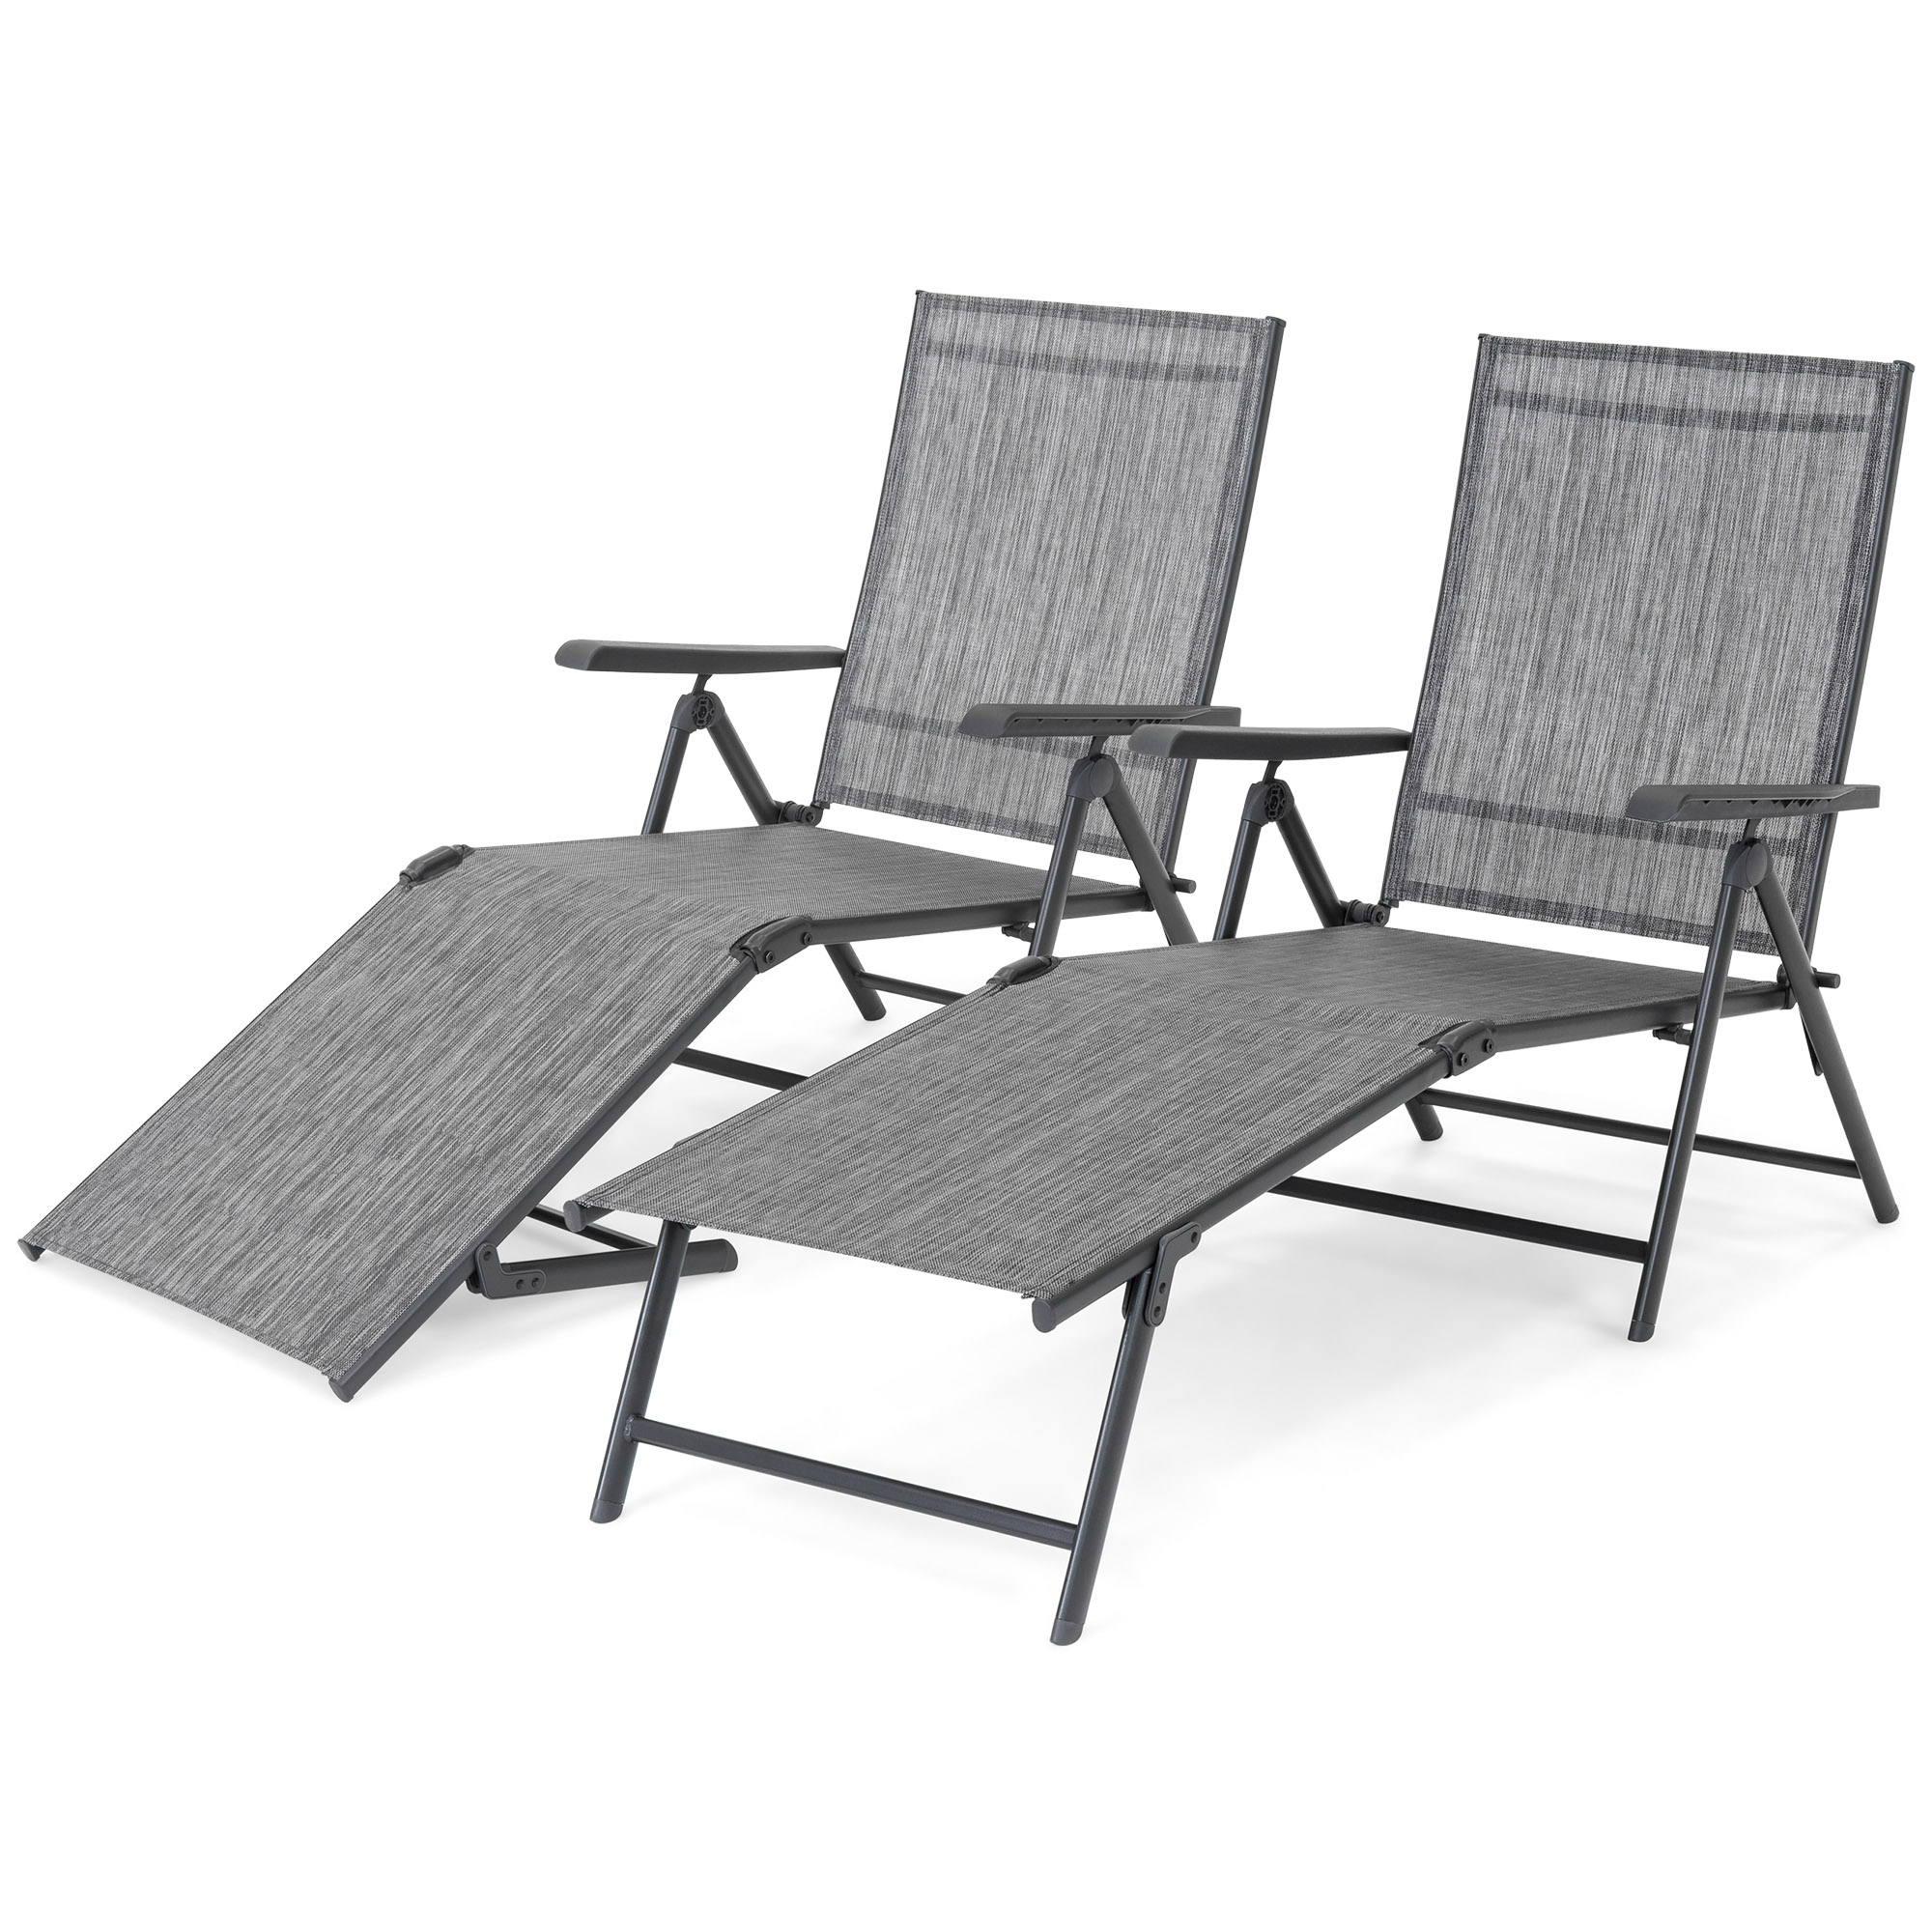 Best Choice Products Set of 2 Outdoor Patio Portable Adjustable Chaise Lounge Recliner Chair Furniture w  Armrests -Gray by Best Choice Products